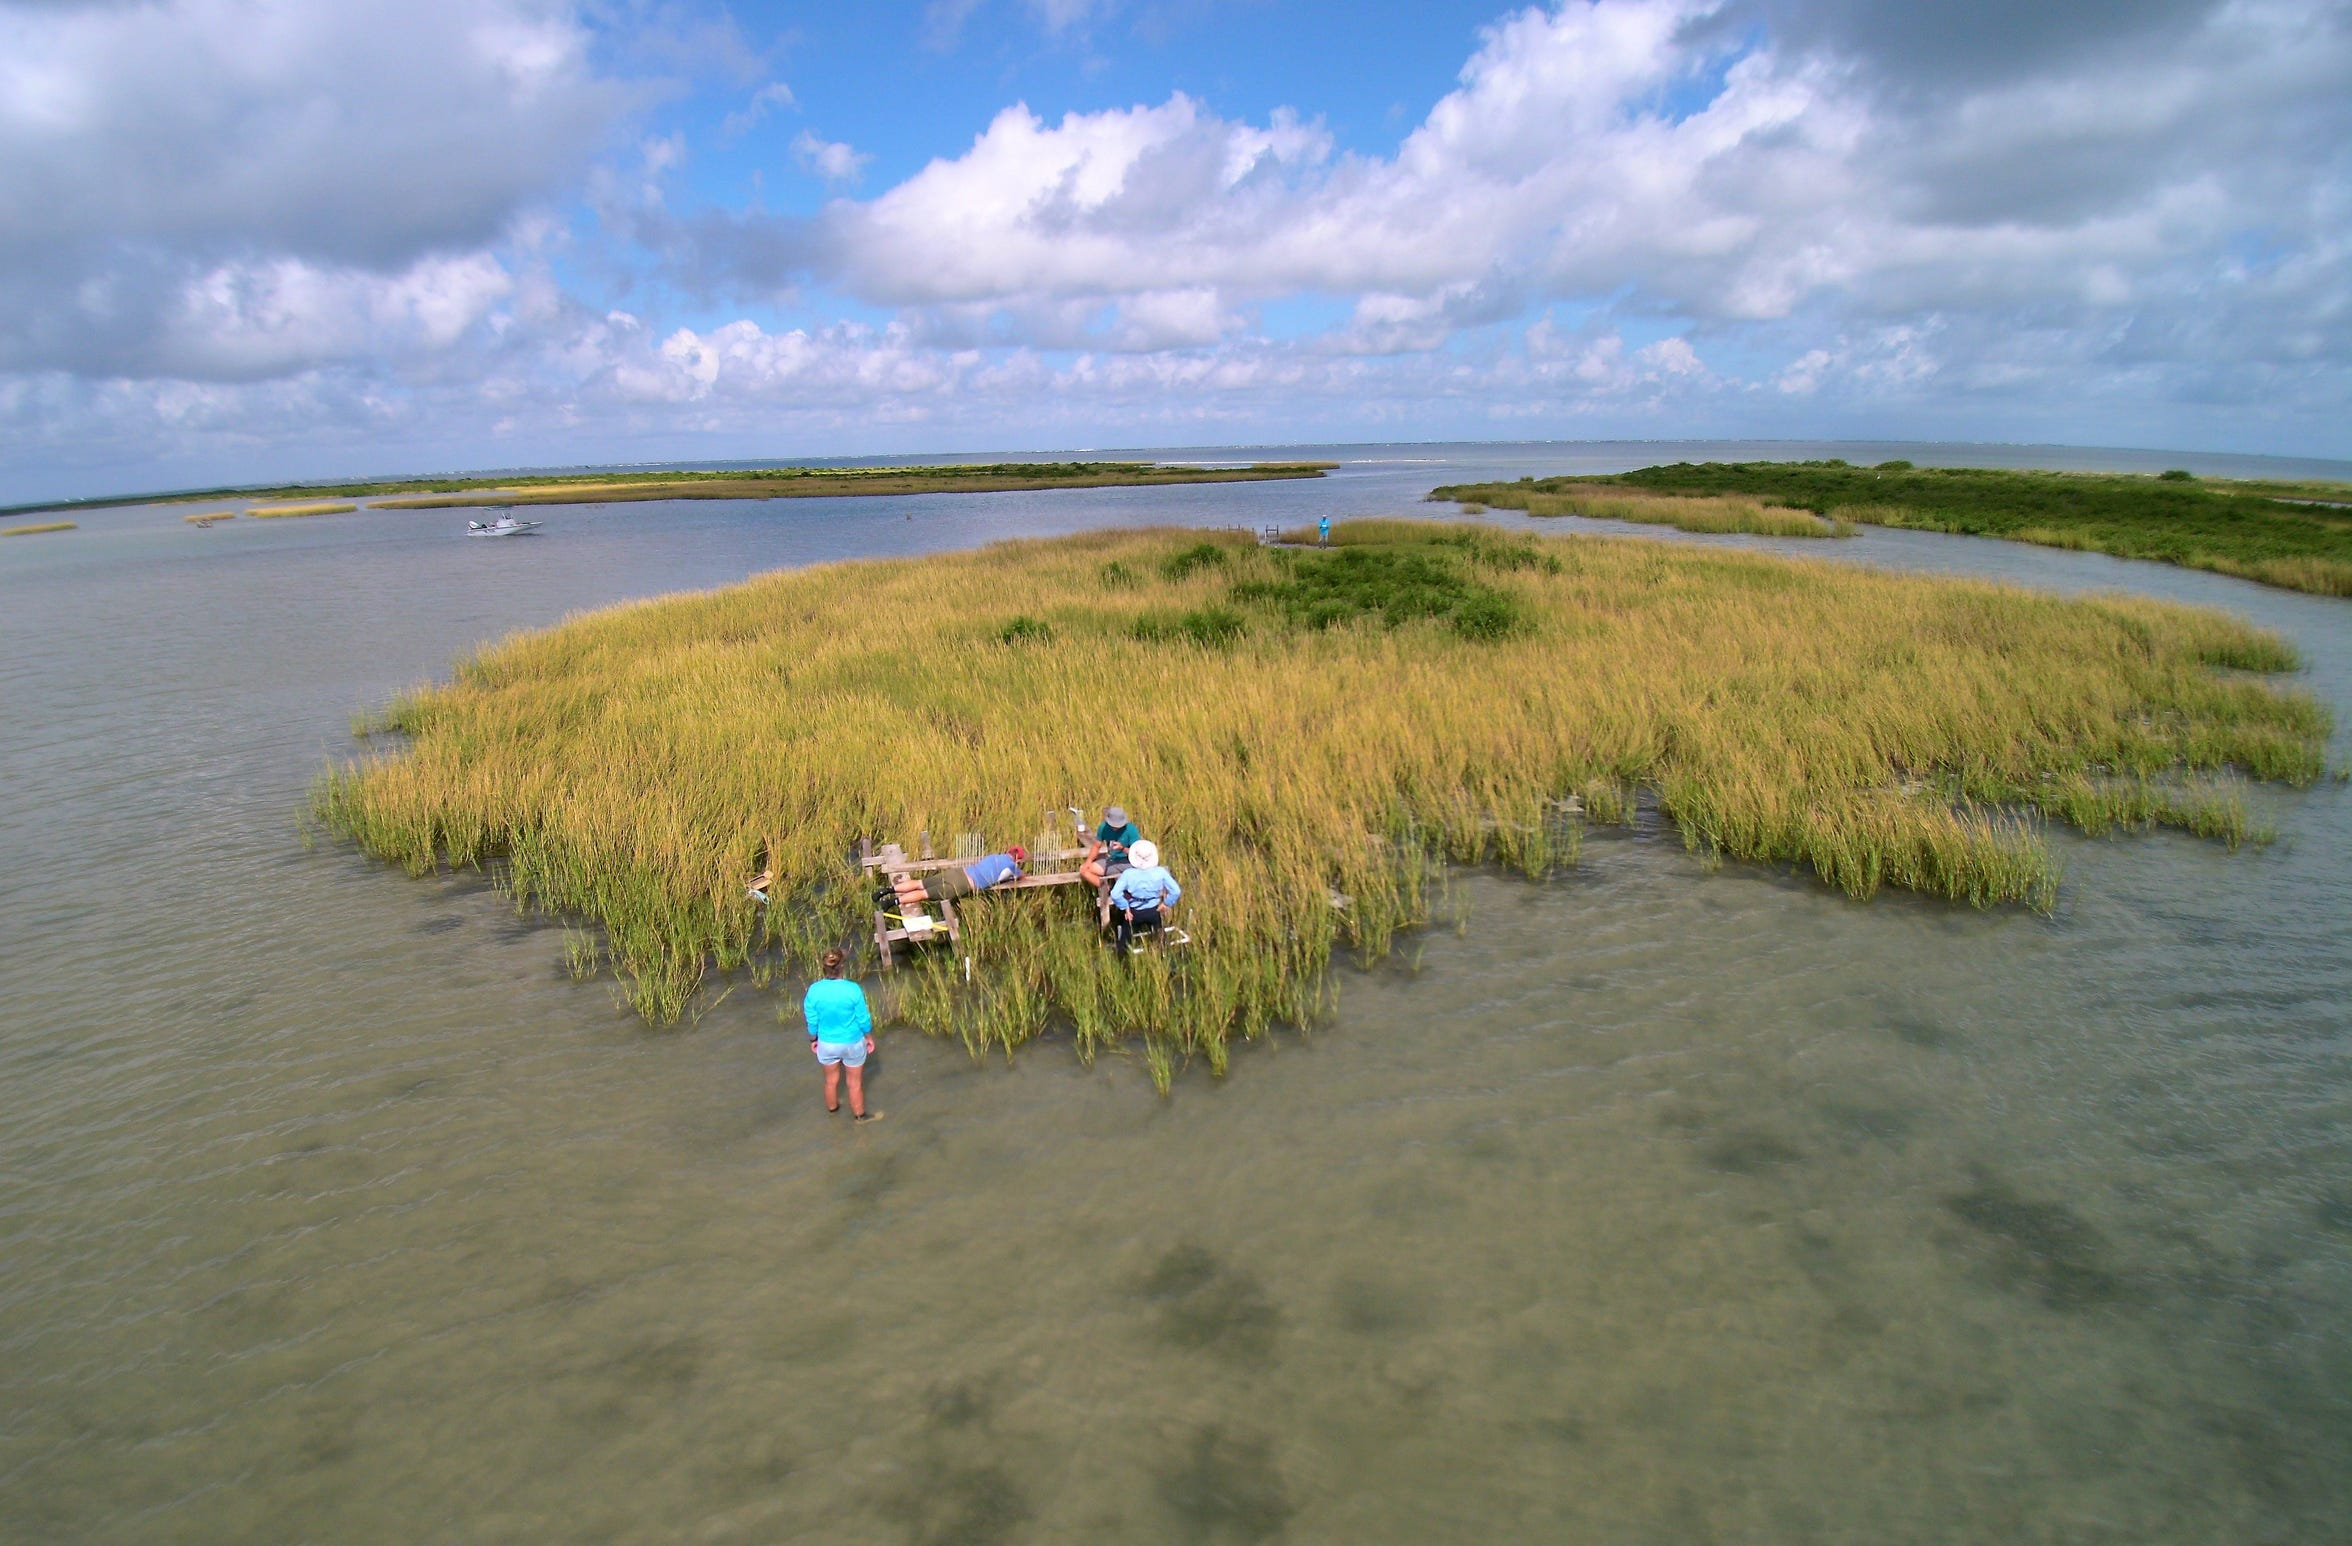 Researchers at the University of Texas Marine Science Institute and the Harte Research Center for Gulf of Mexico Studies are comparing pre-Harvey bay conditions with conditions following the storm to determine the effects.